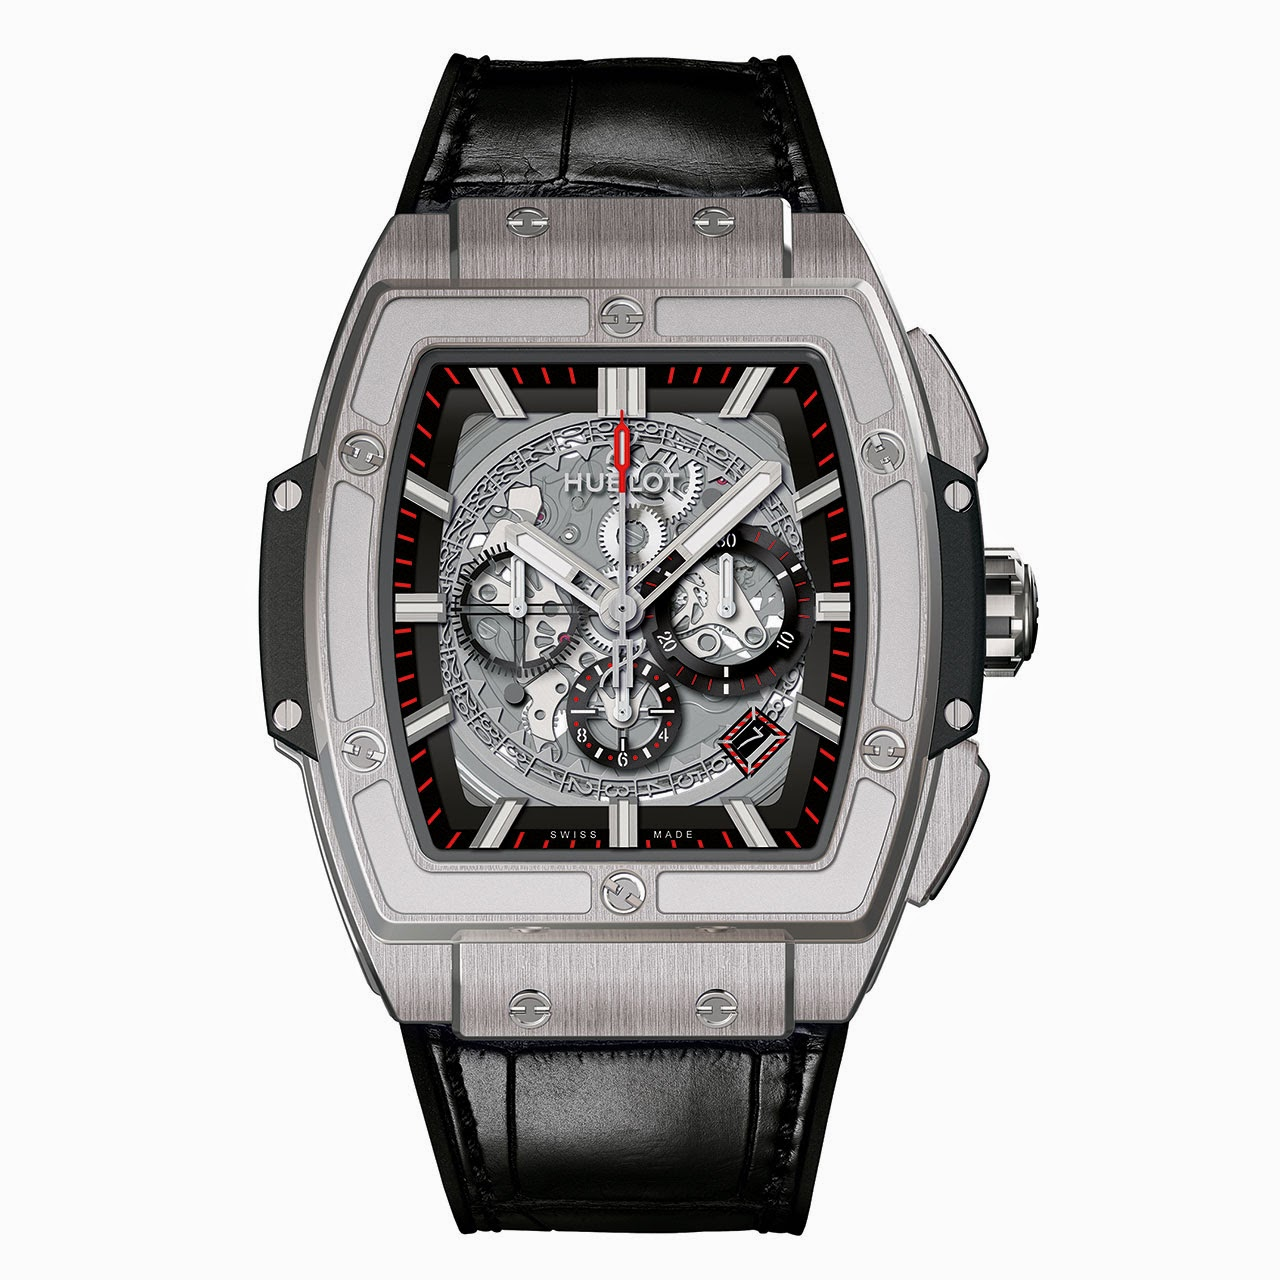 Hublot Spirit of Big Bang Automatic Watch